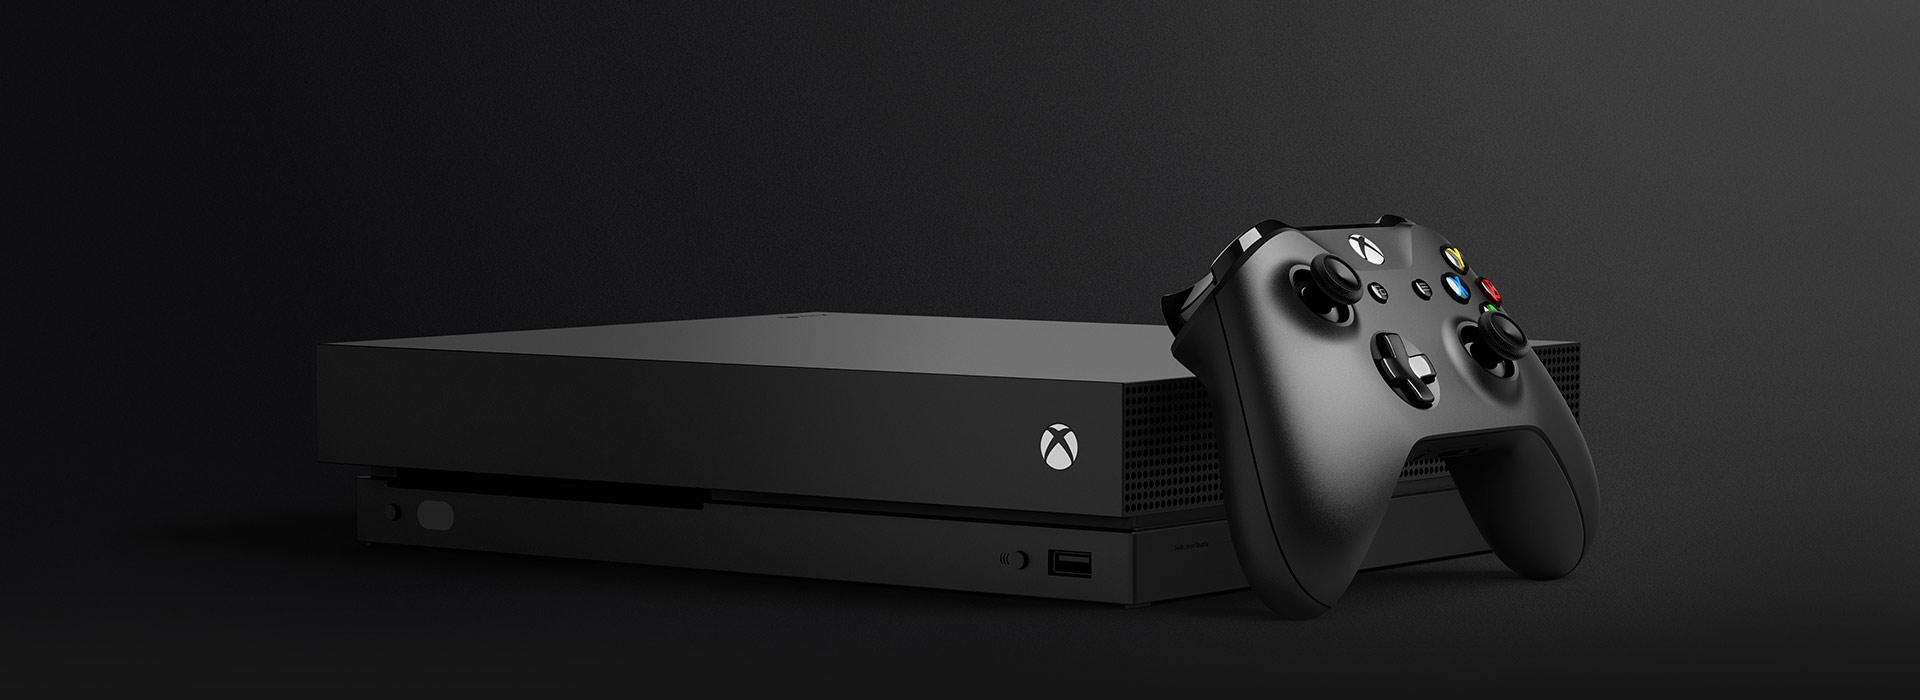 Xbox One X con Mando inalámbrico Xbox One